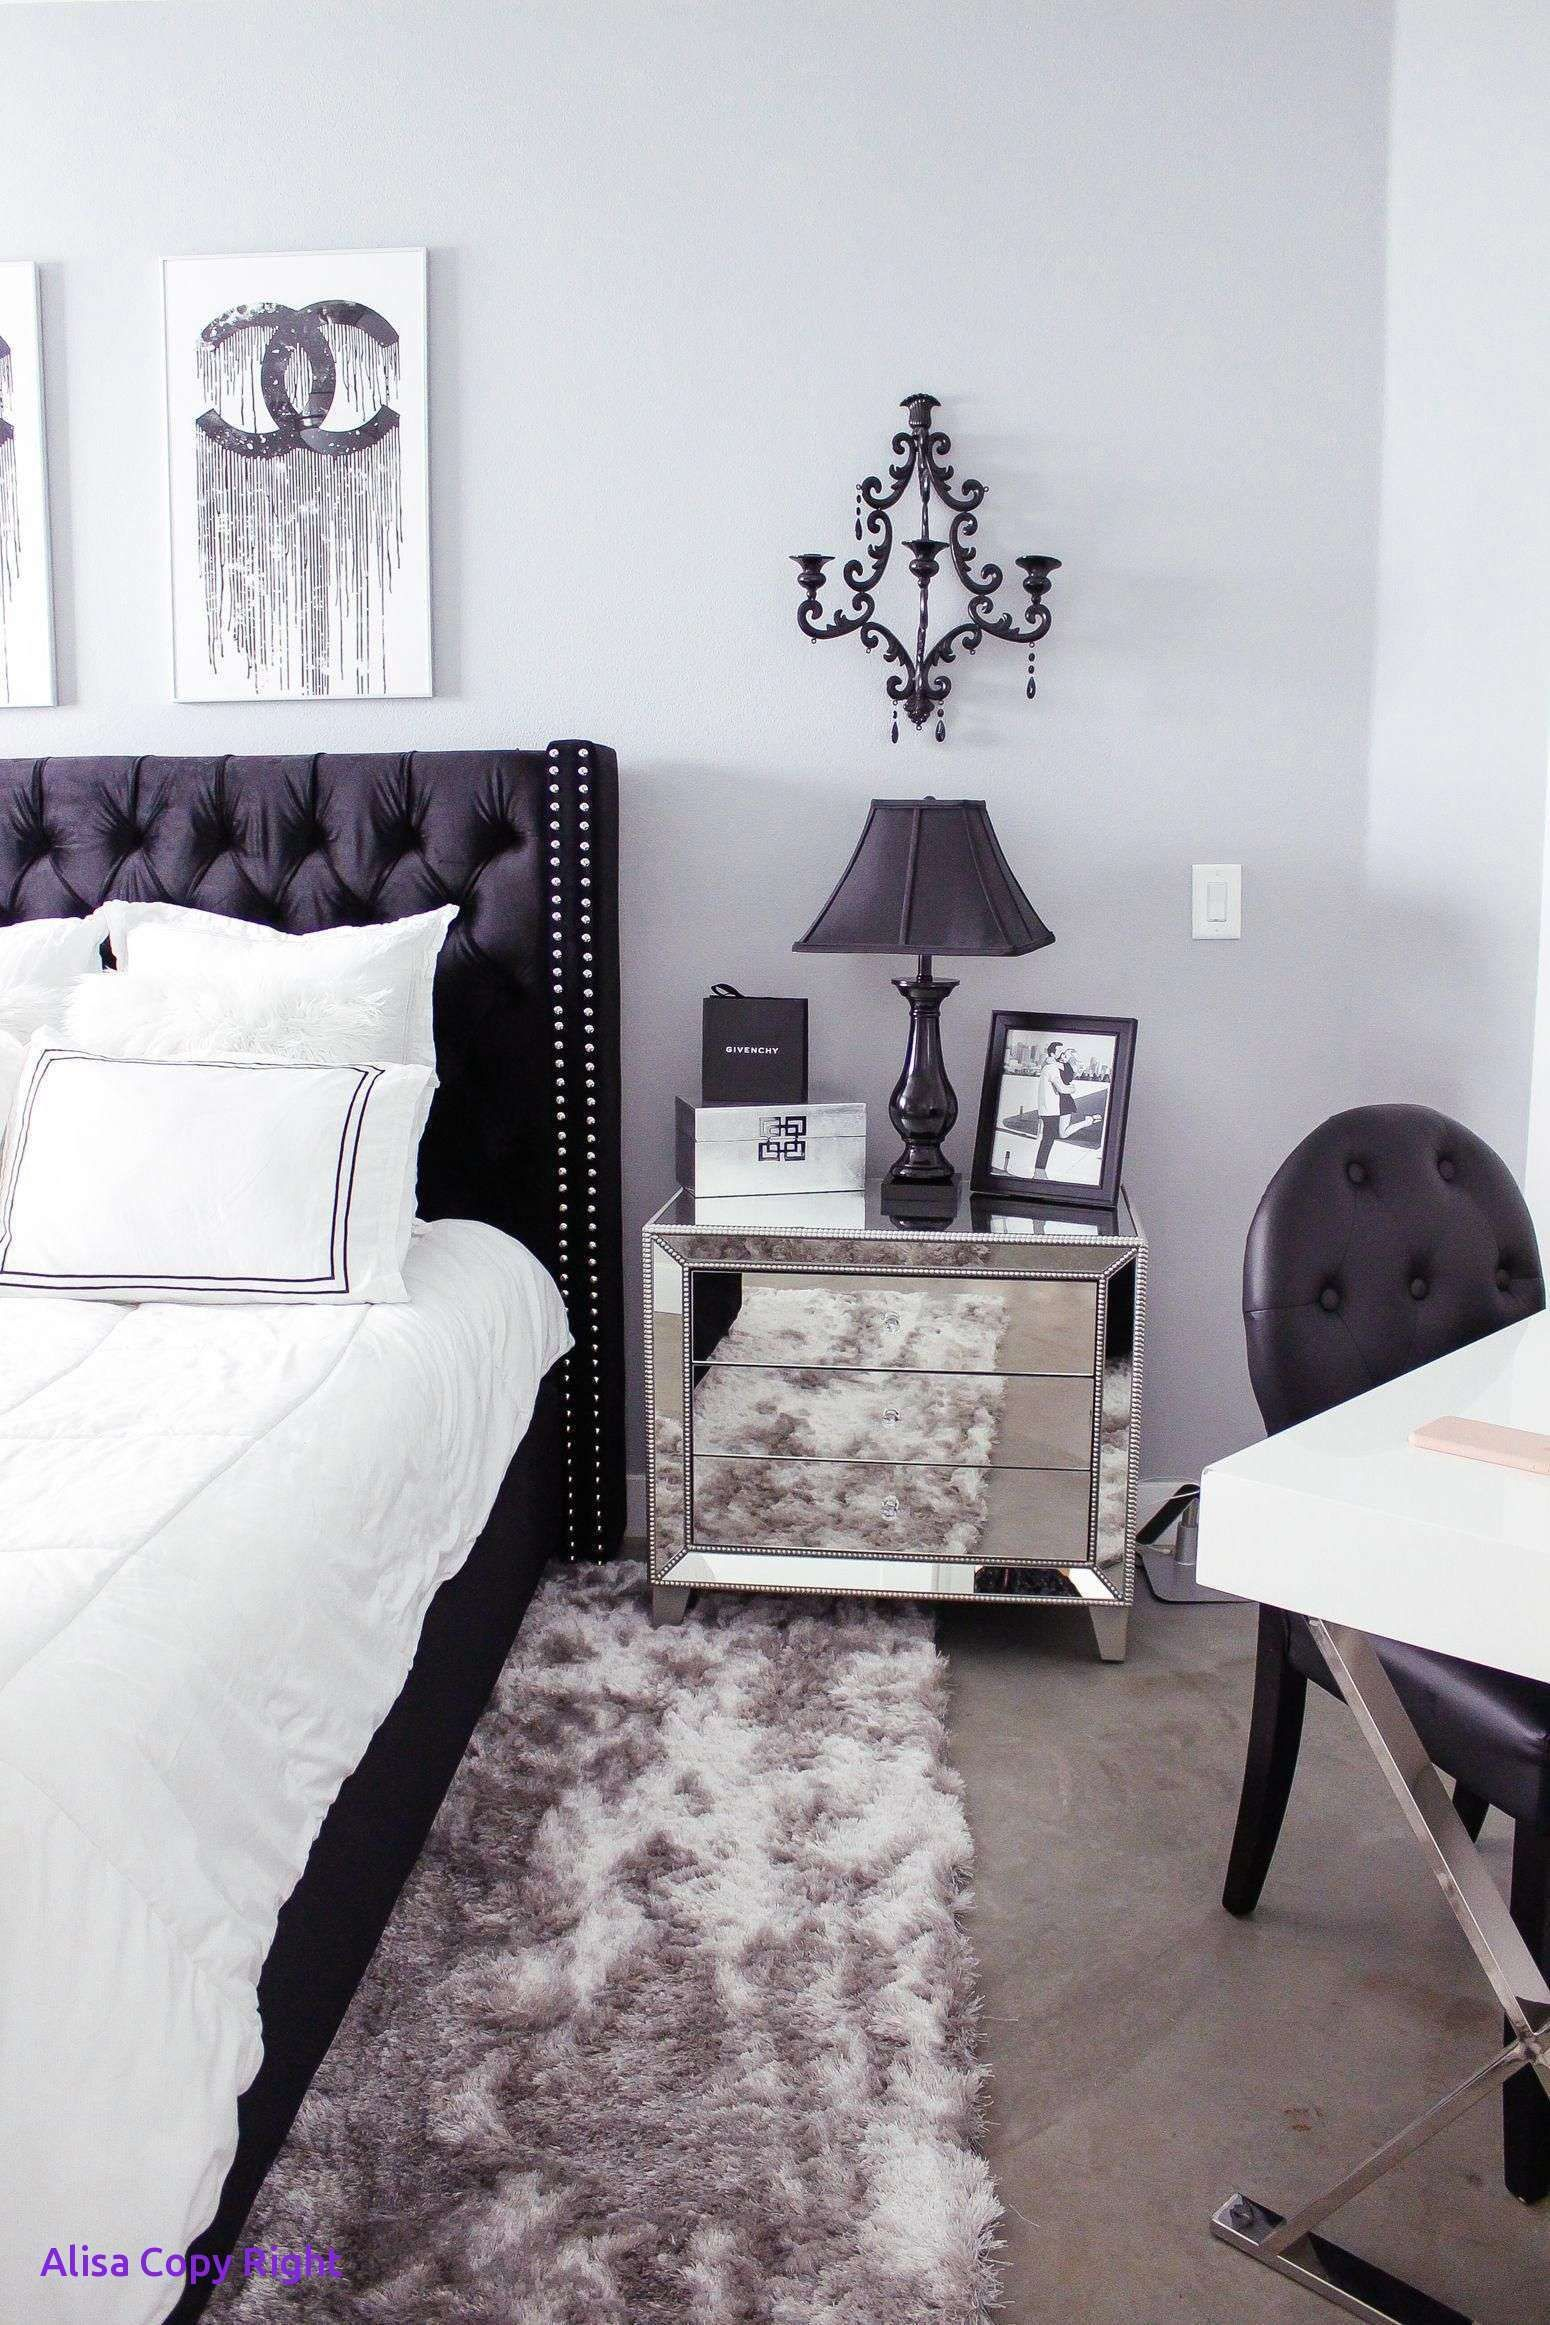 Black And White Bedroom Themes Homedecoration Homedecorations Homedecorationideas Decor Glam Interior